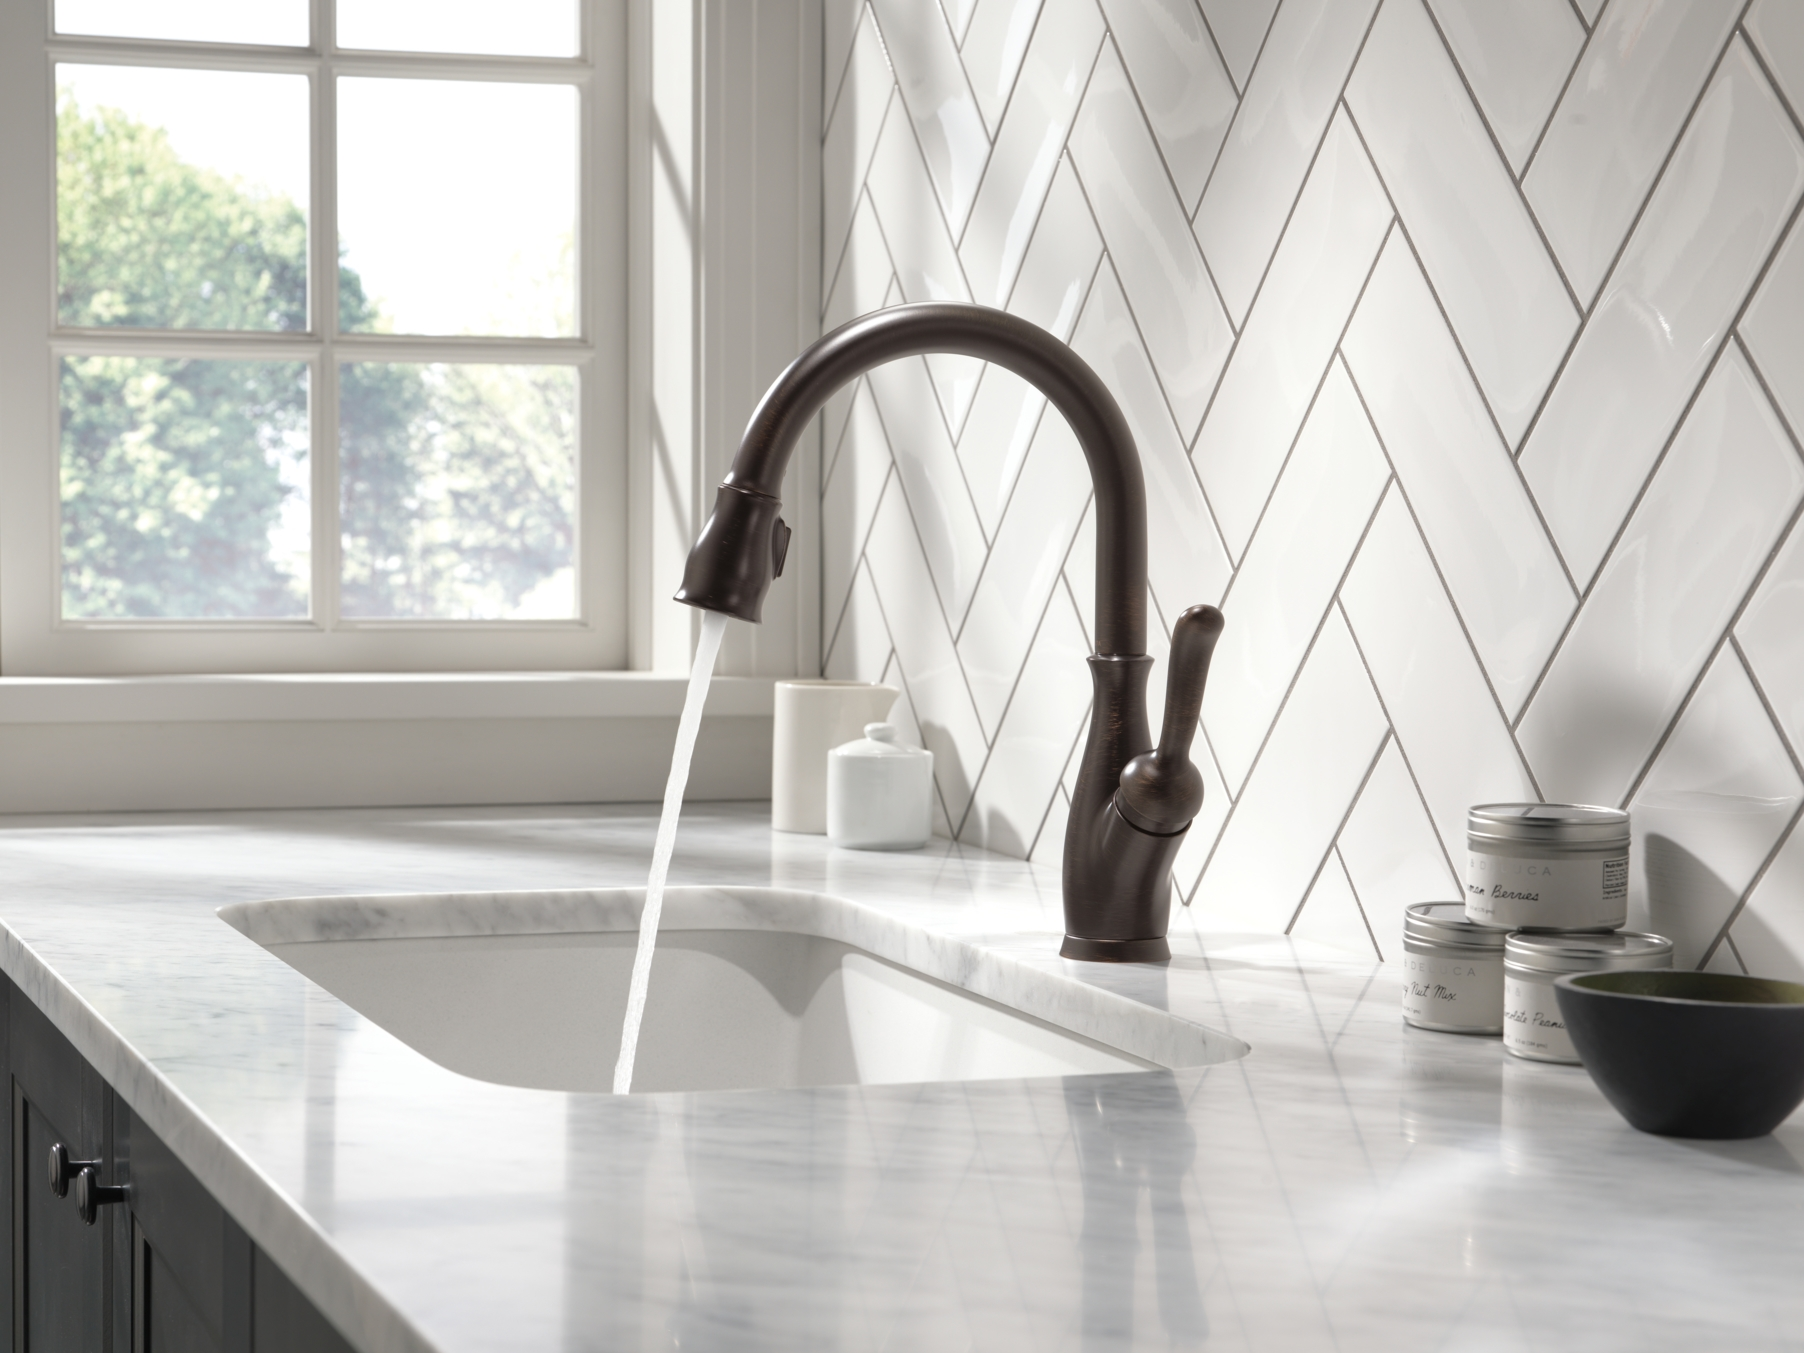 Ideas, utility faucet with pulldown sprayer utility faucet with pulldown sprayer leland kitchen collection 1804 x 1353  .